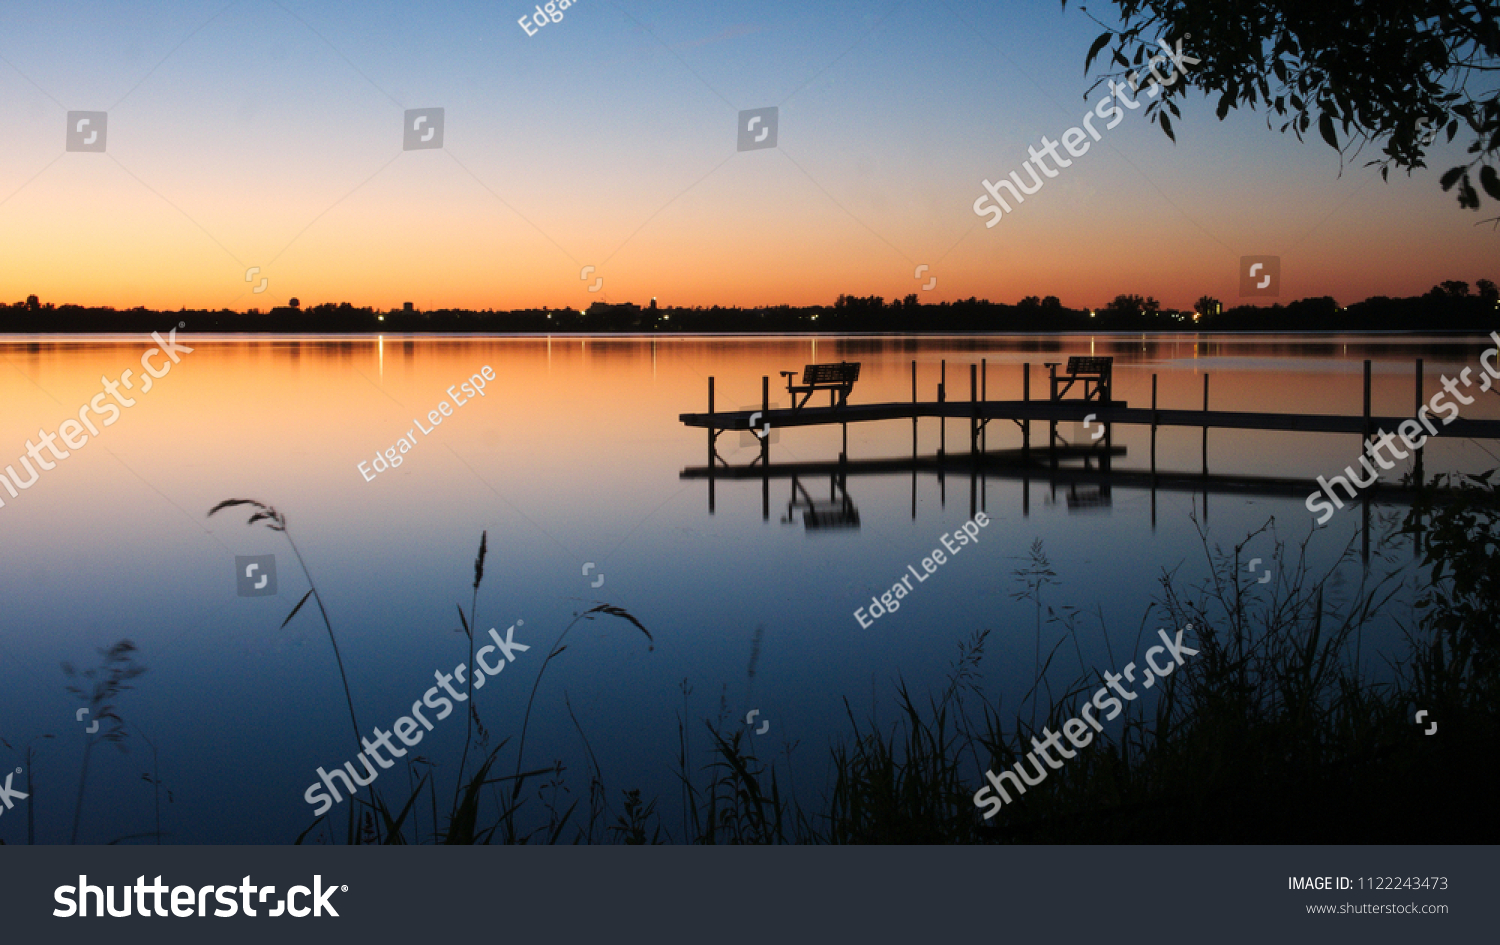 stock-photo-bemidji-minnesota-the-best-t